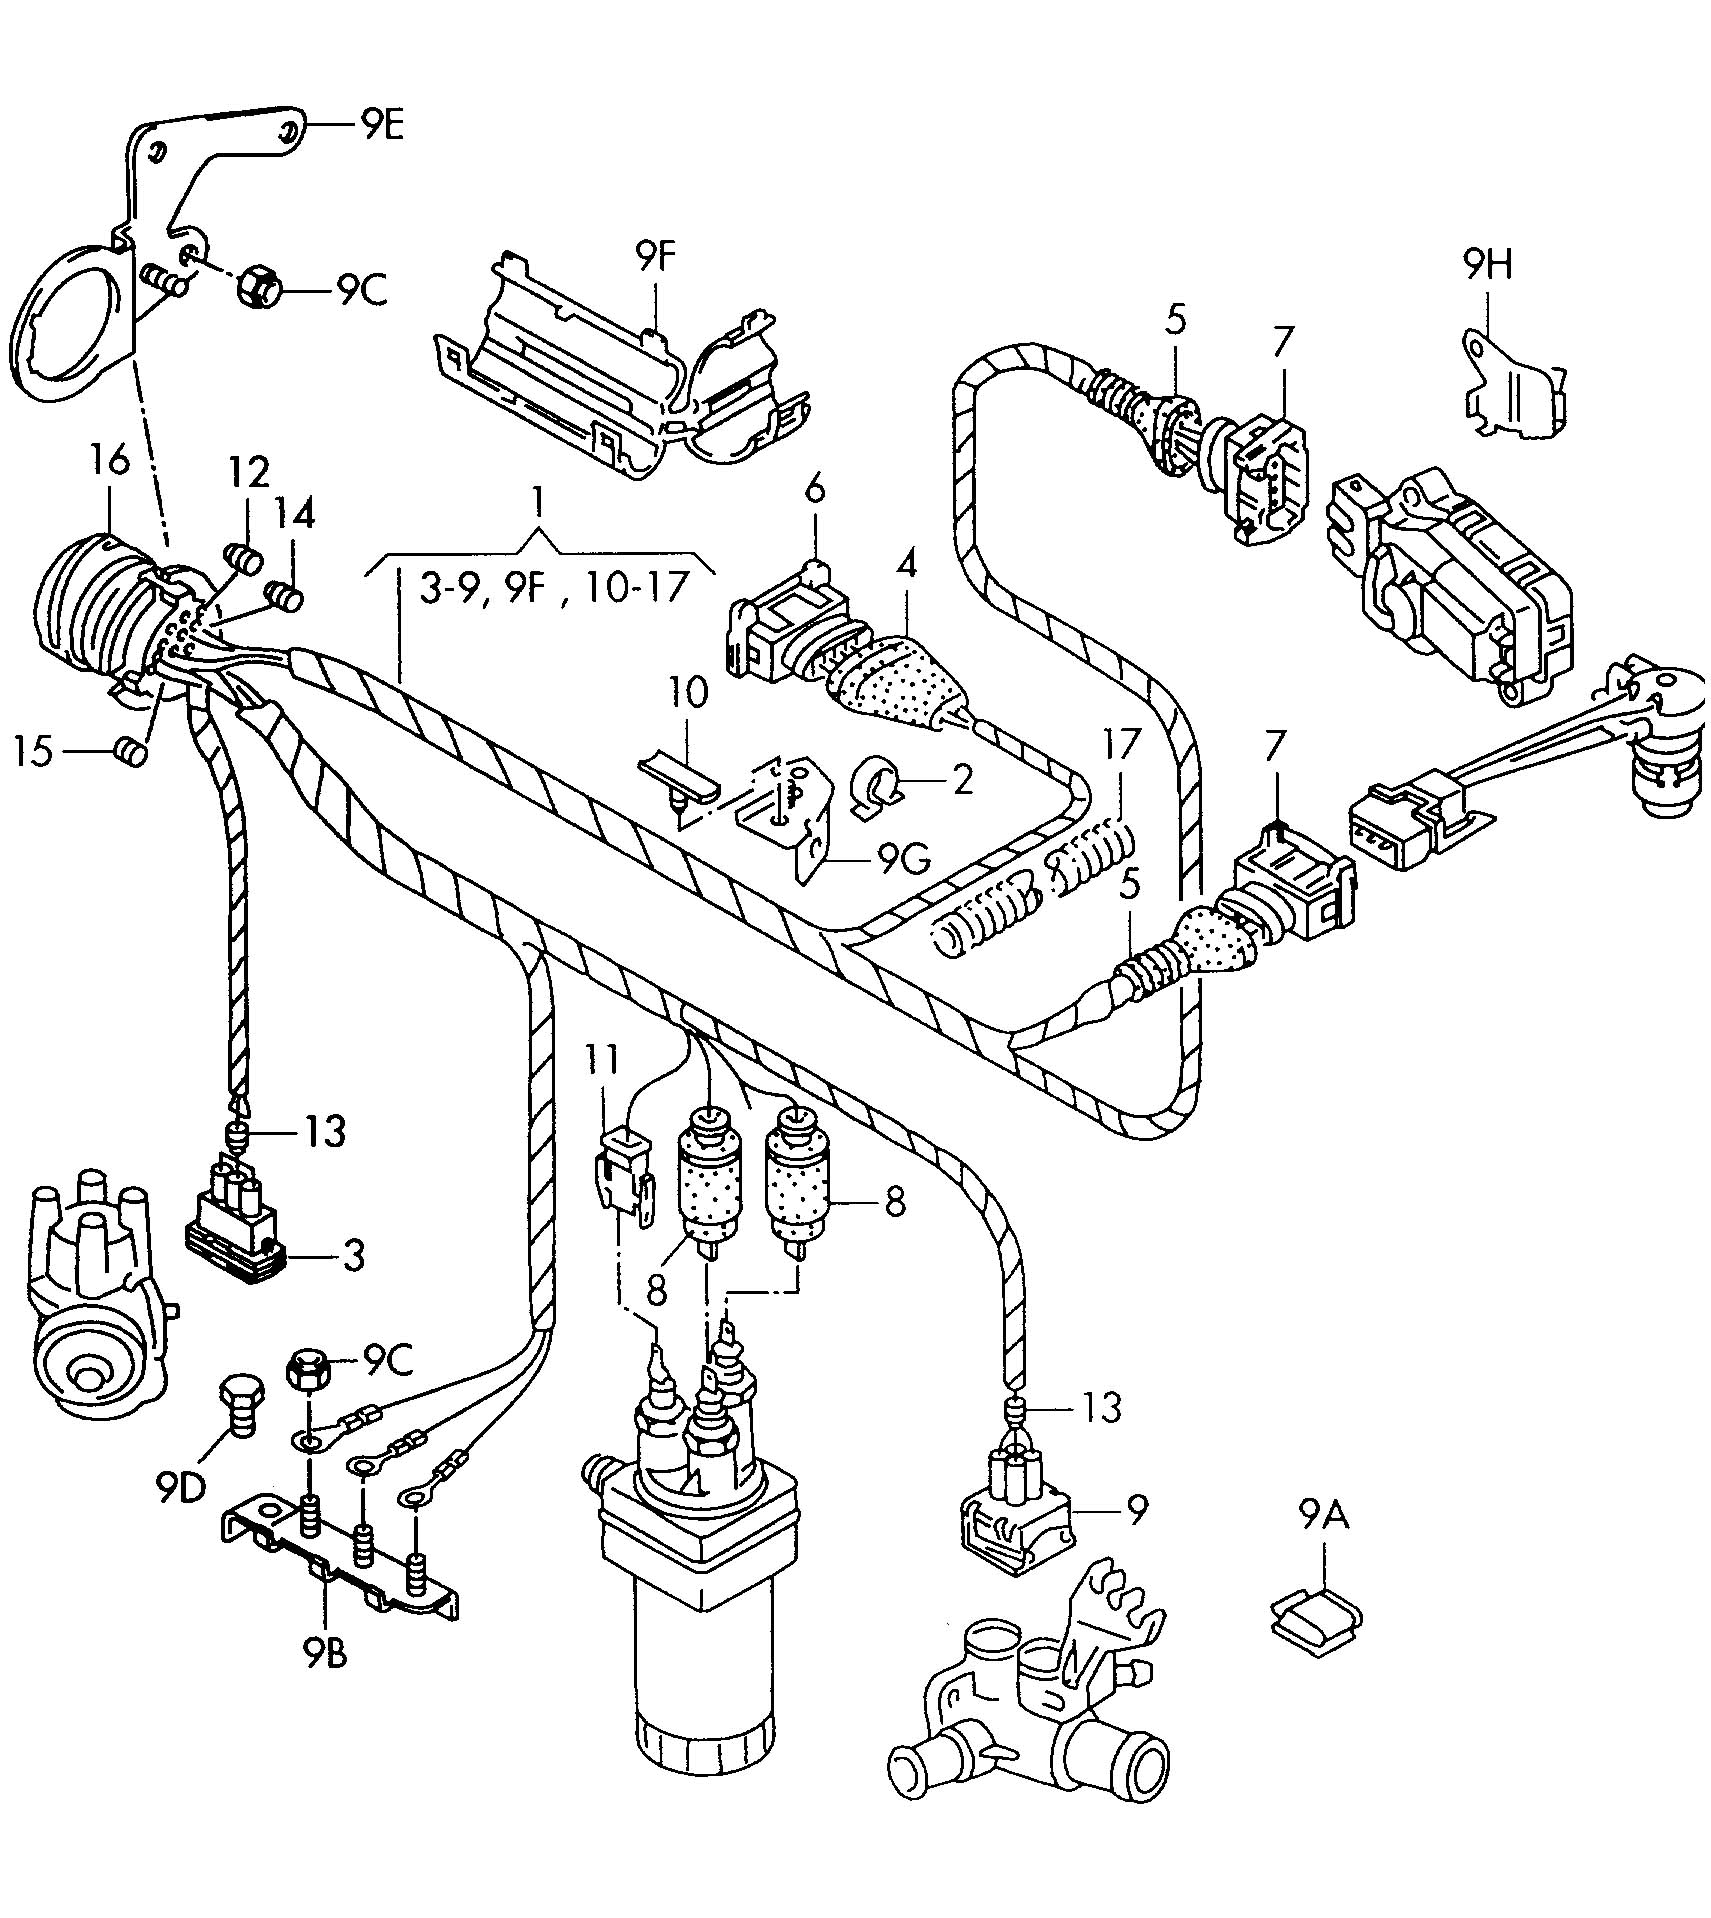 Volkswagen Golf Harness For Engine Single Parts